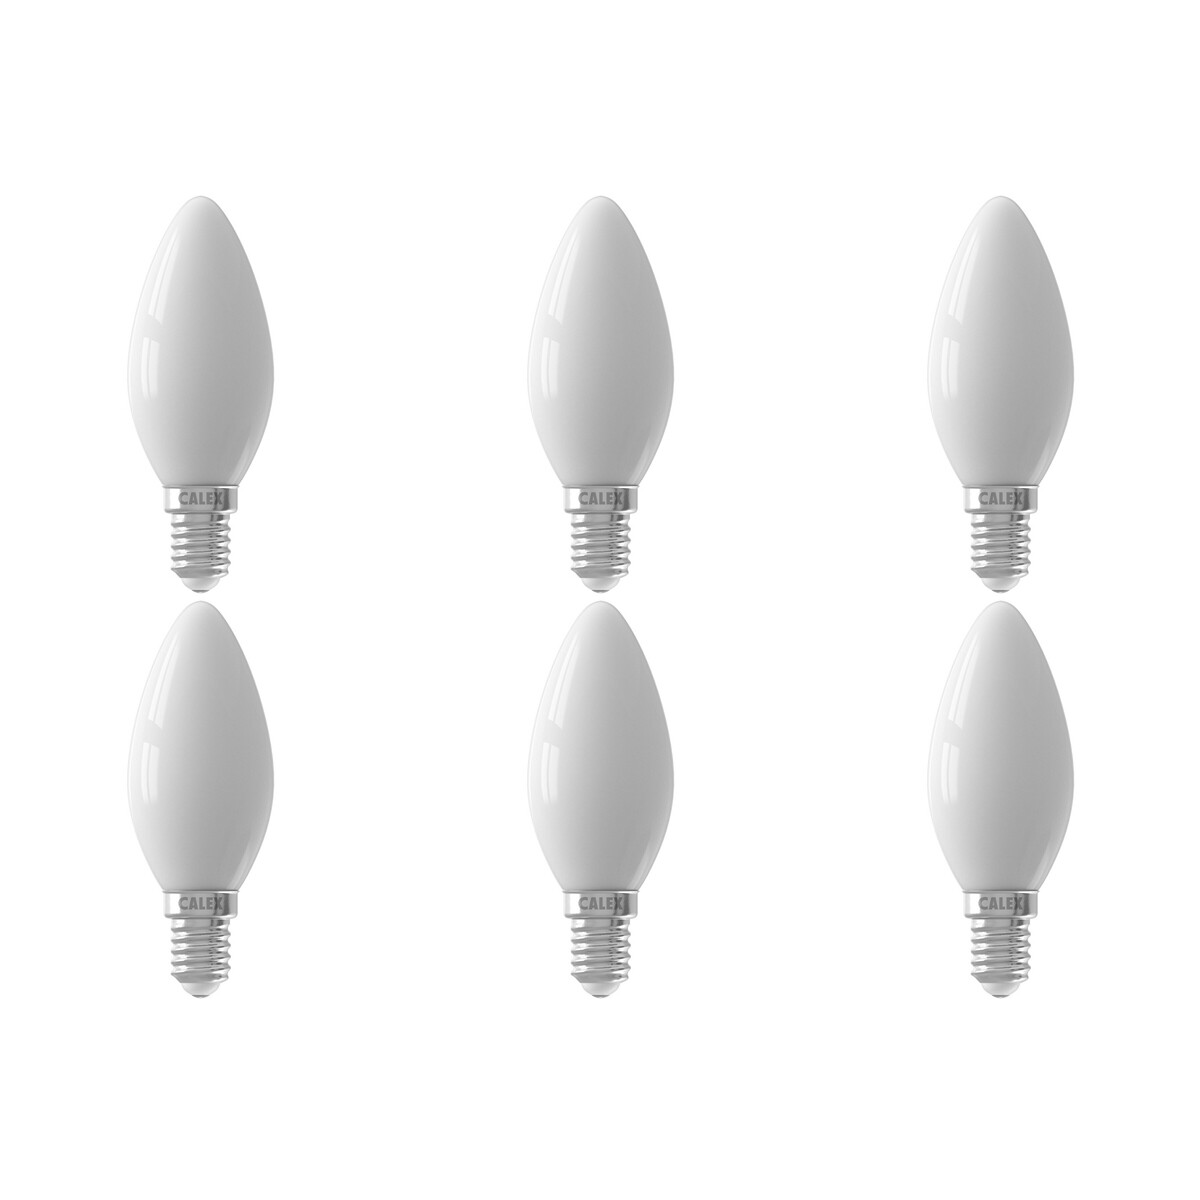 CALEX - LED Lamp 6 Pack - Filament B35 - E14 Fitting - 3W - Dimbaar - Warm Wit 2700K - Wit